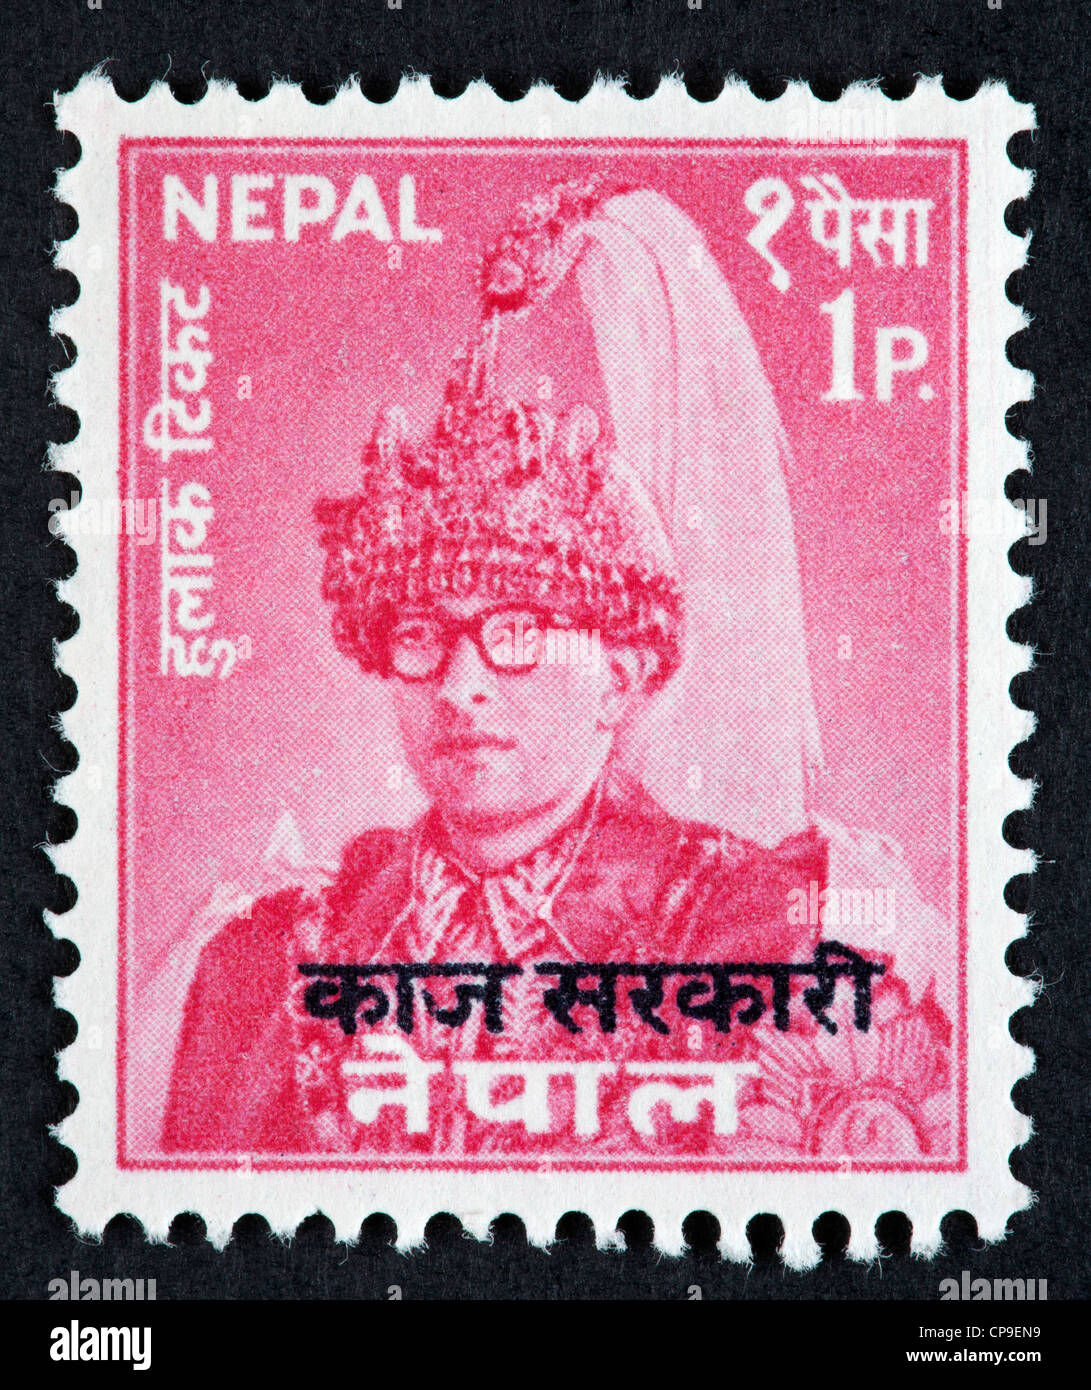 Nepal Nepal Postage Stamps As Shown In Picture